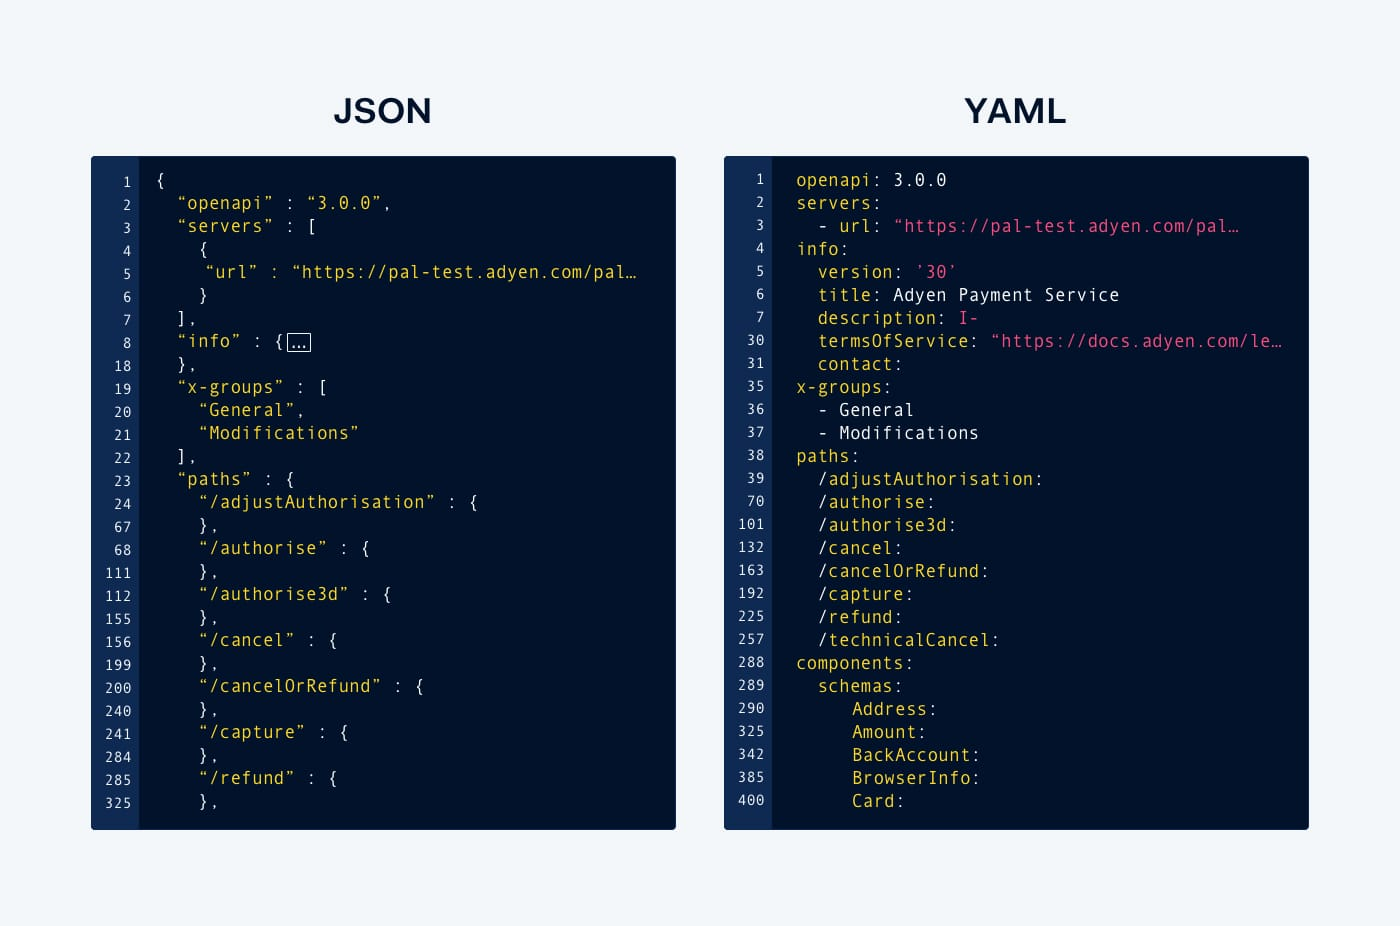 JSON vs YAML for the OpenAPI standard